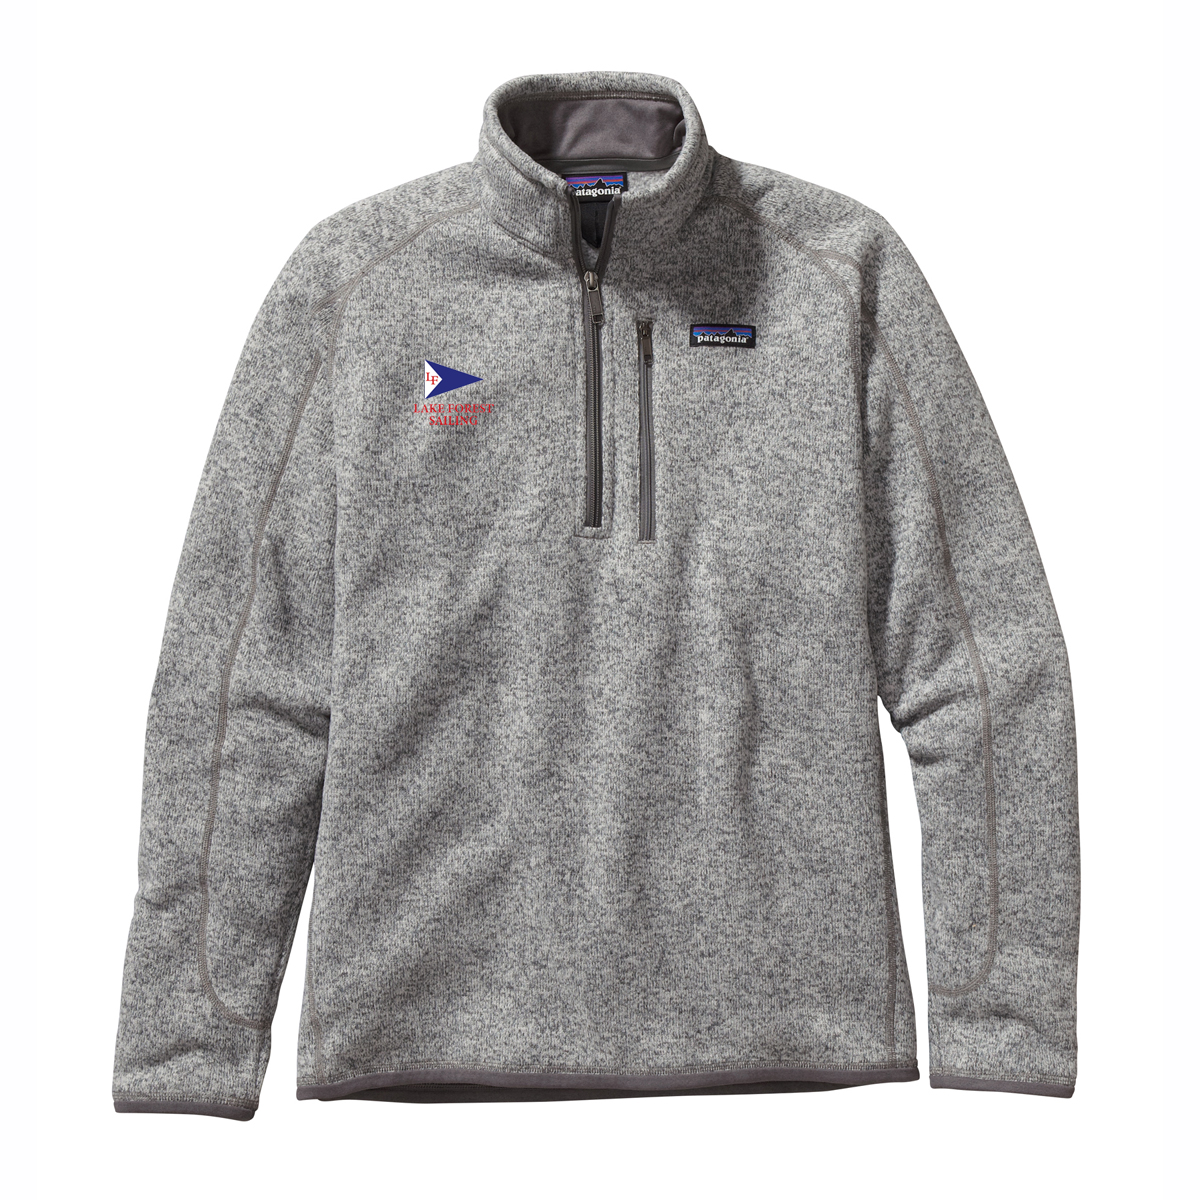 LAKE FOREST SAILING M'S PATAGONIA BETTER SWEATER 1/4 ZIP